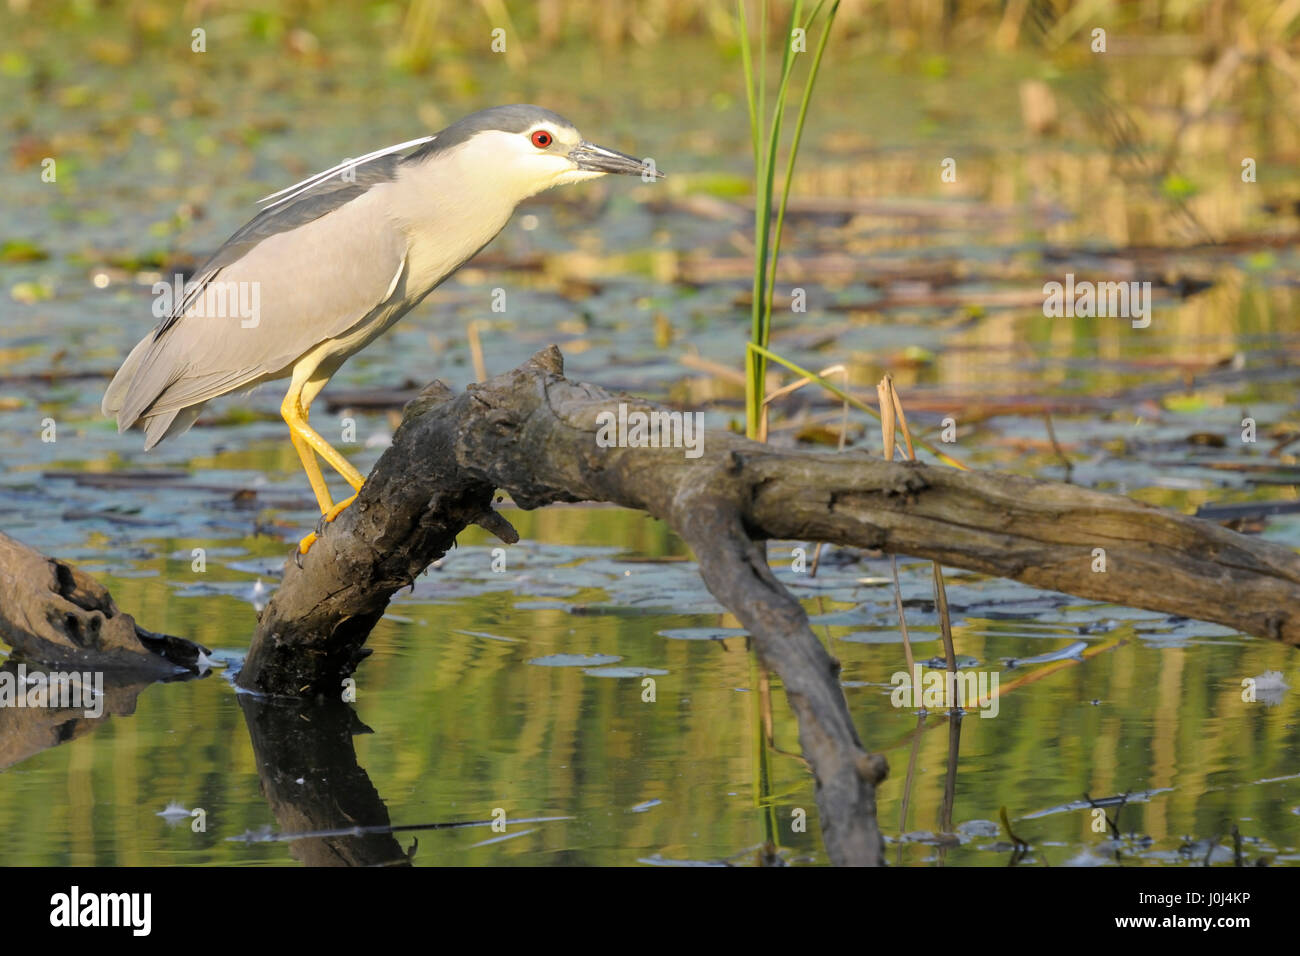 Night Heron (Nycticorax nycticorax) on a branch over water, Hortobagy national park, Hungary. - Stock Image